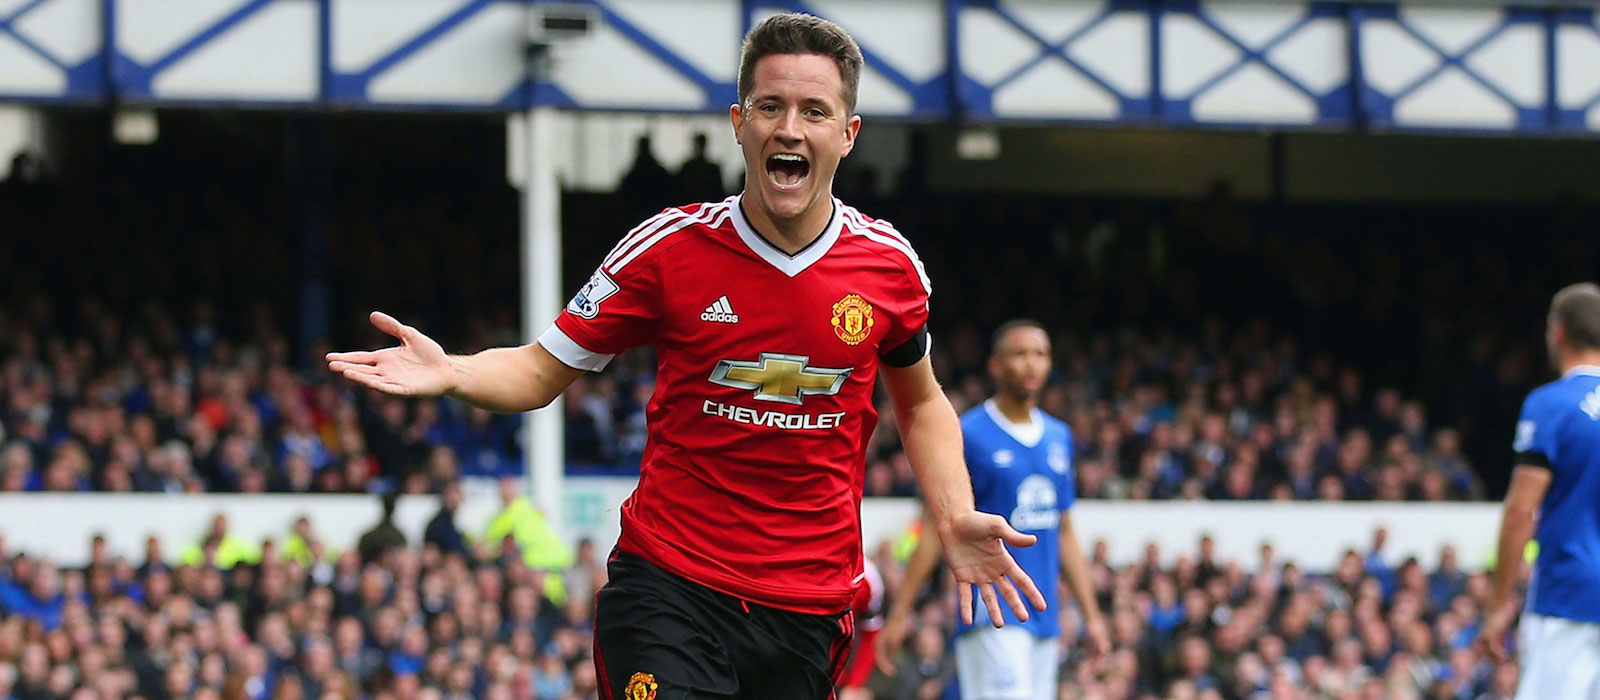 Red Thoughts: Should Ander Herrera be Man United's next captain?